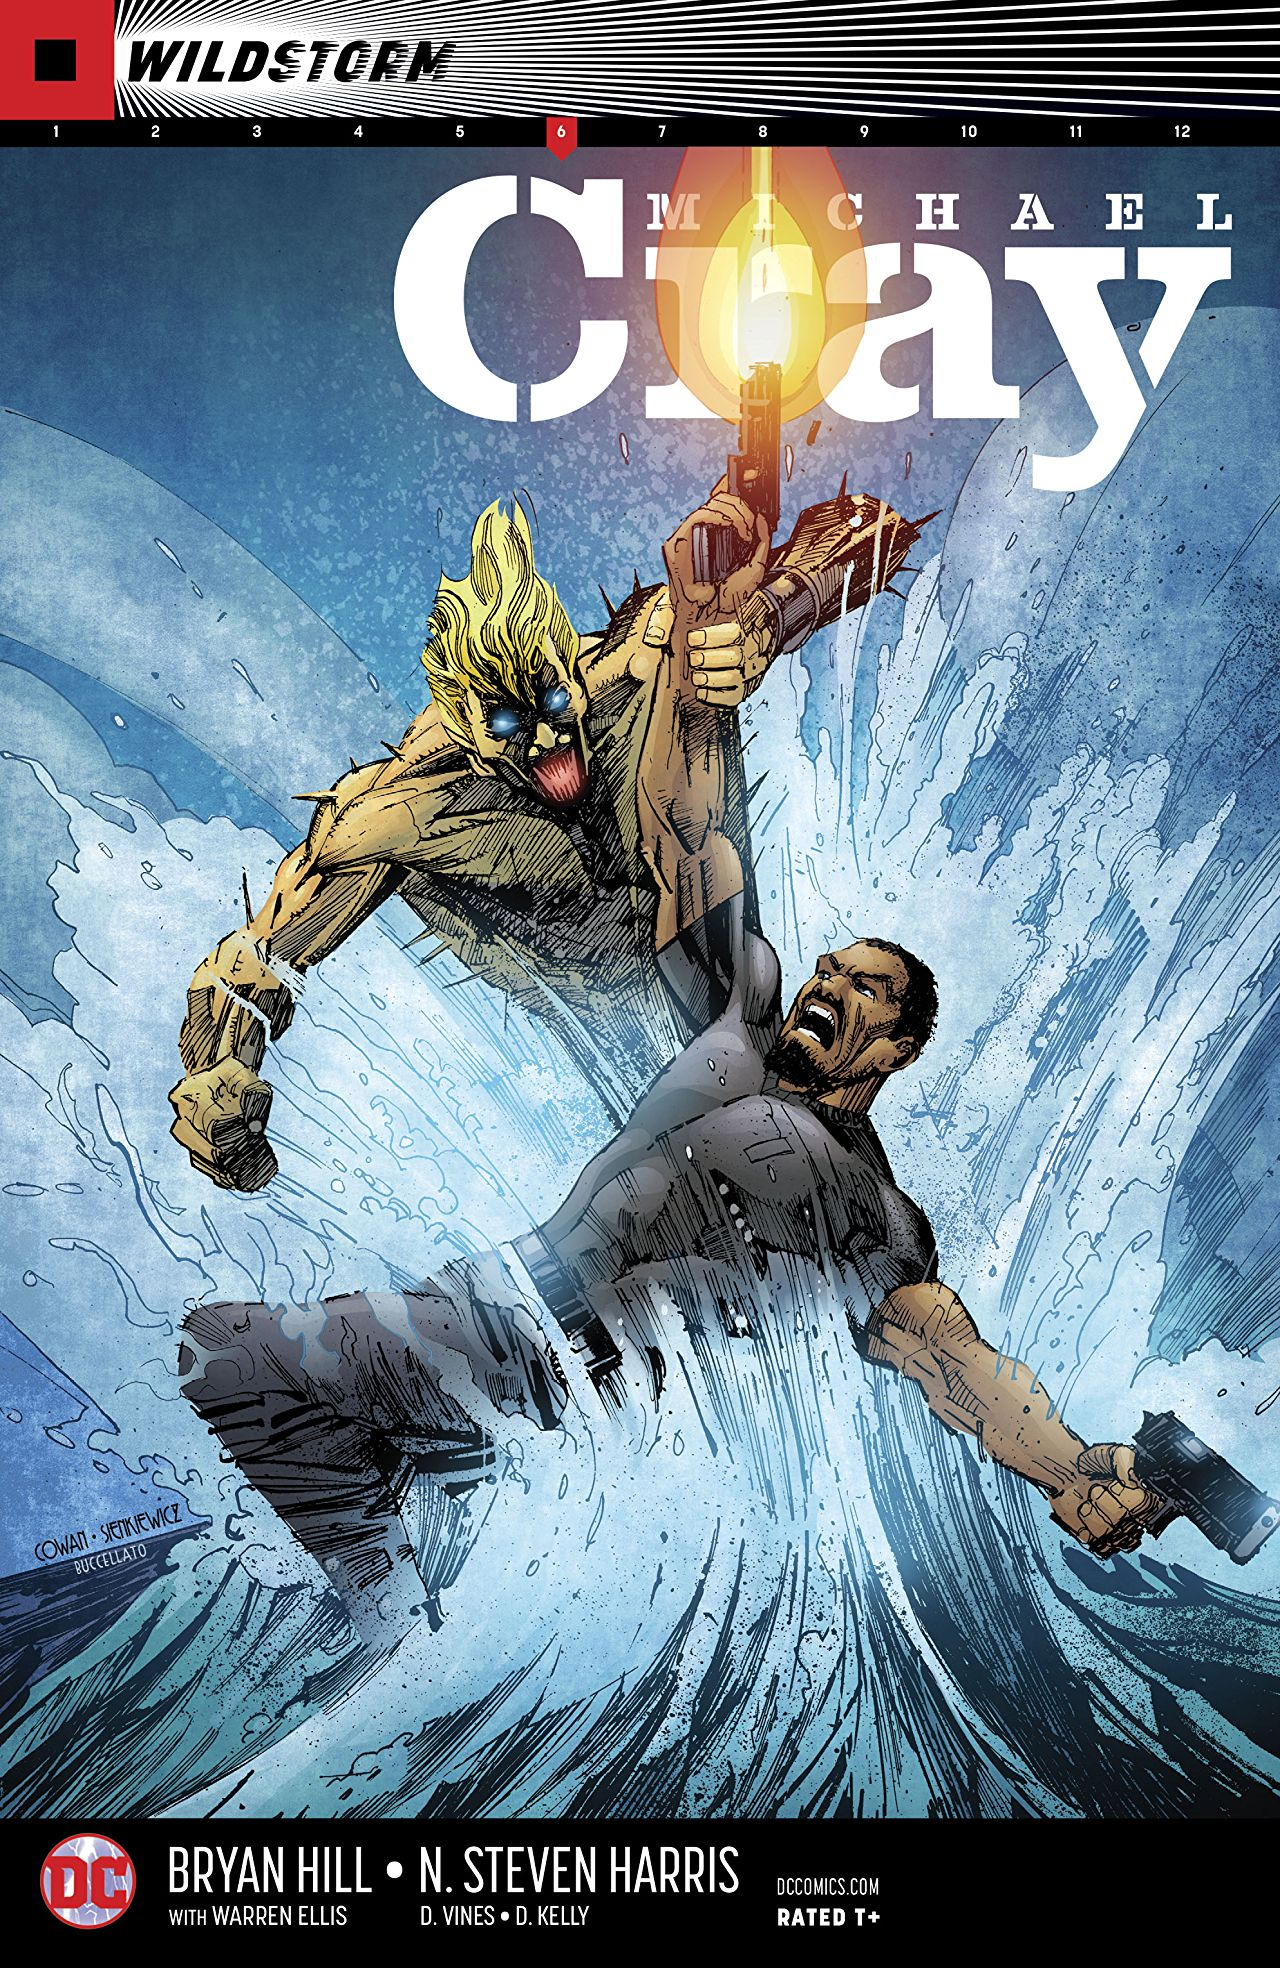 The Wild Storm: Michael Cray #6 Review